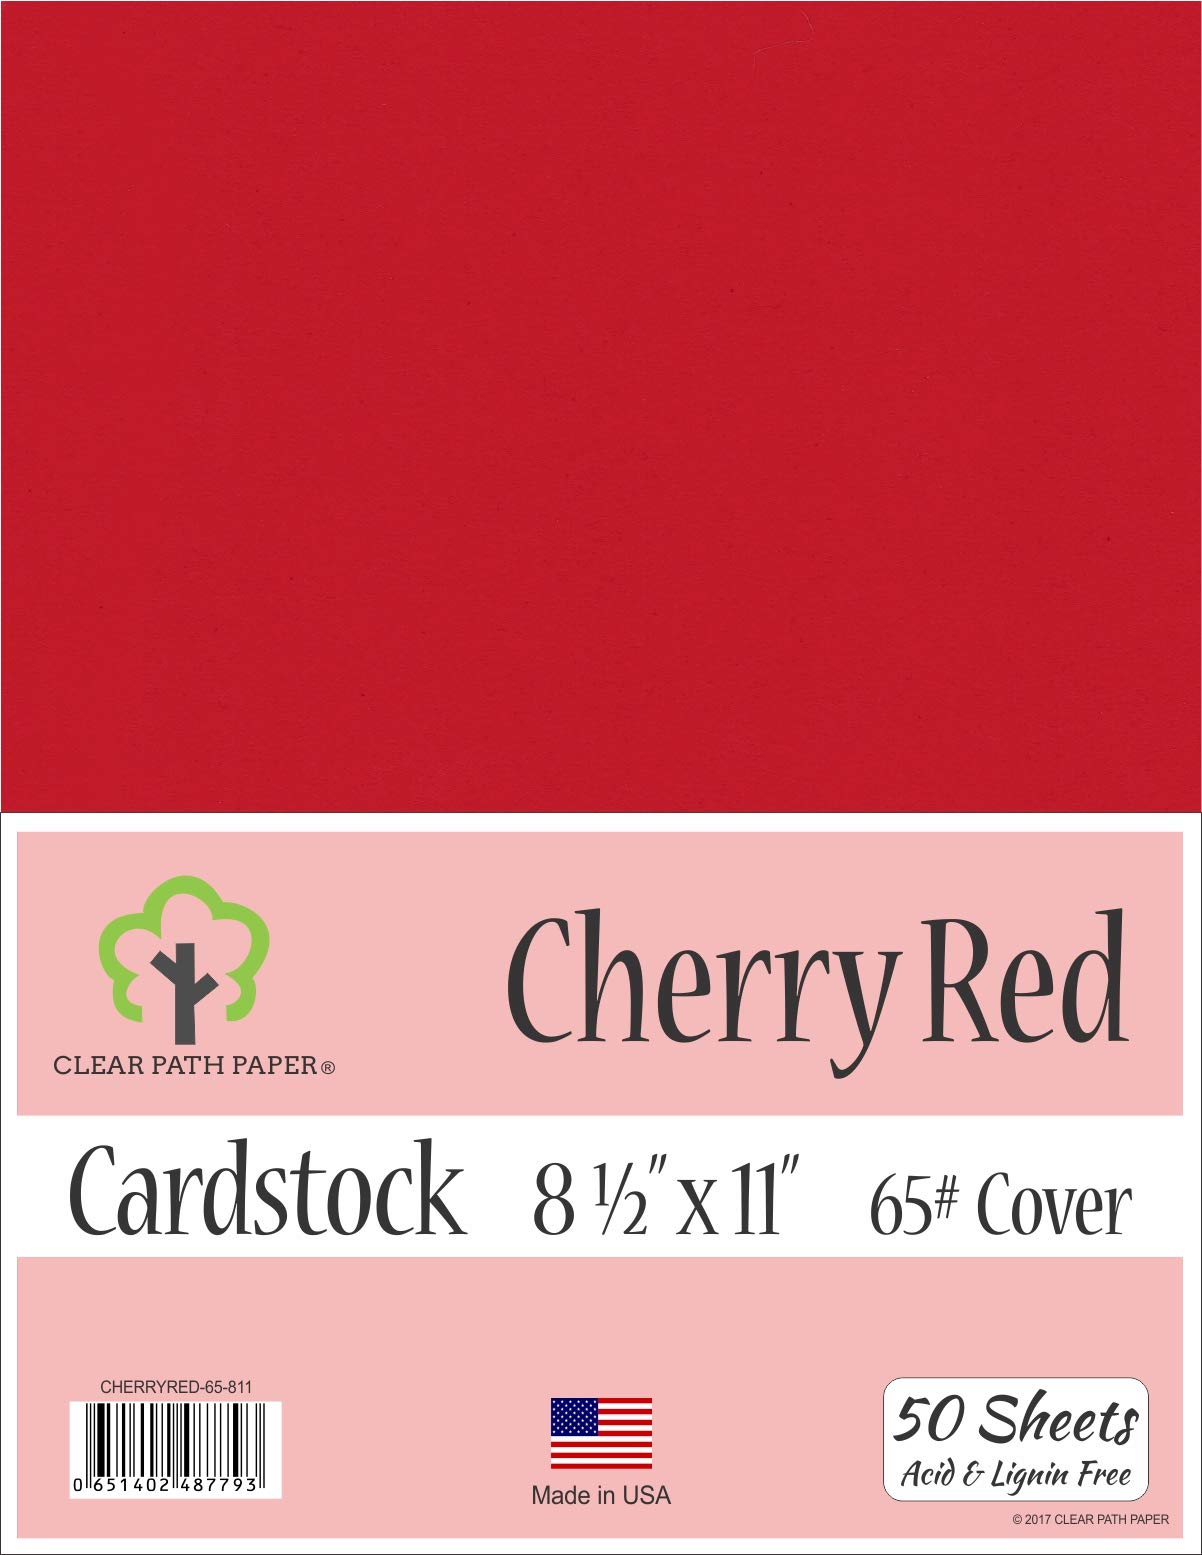 Cherry Red Cardstock - 8.5 x 11 inch - 65Lb Cover - 50 Sheets